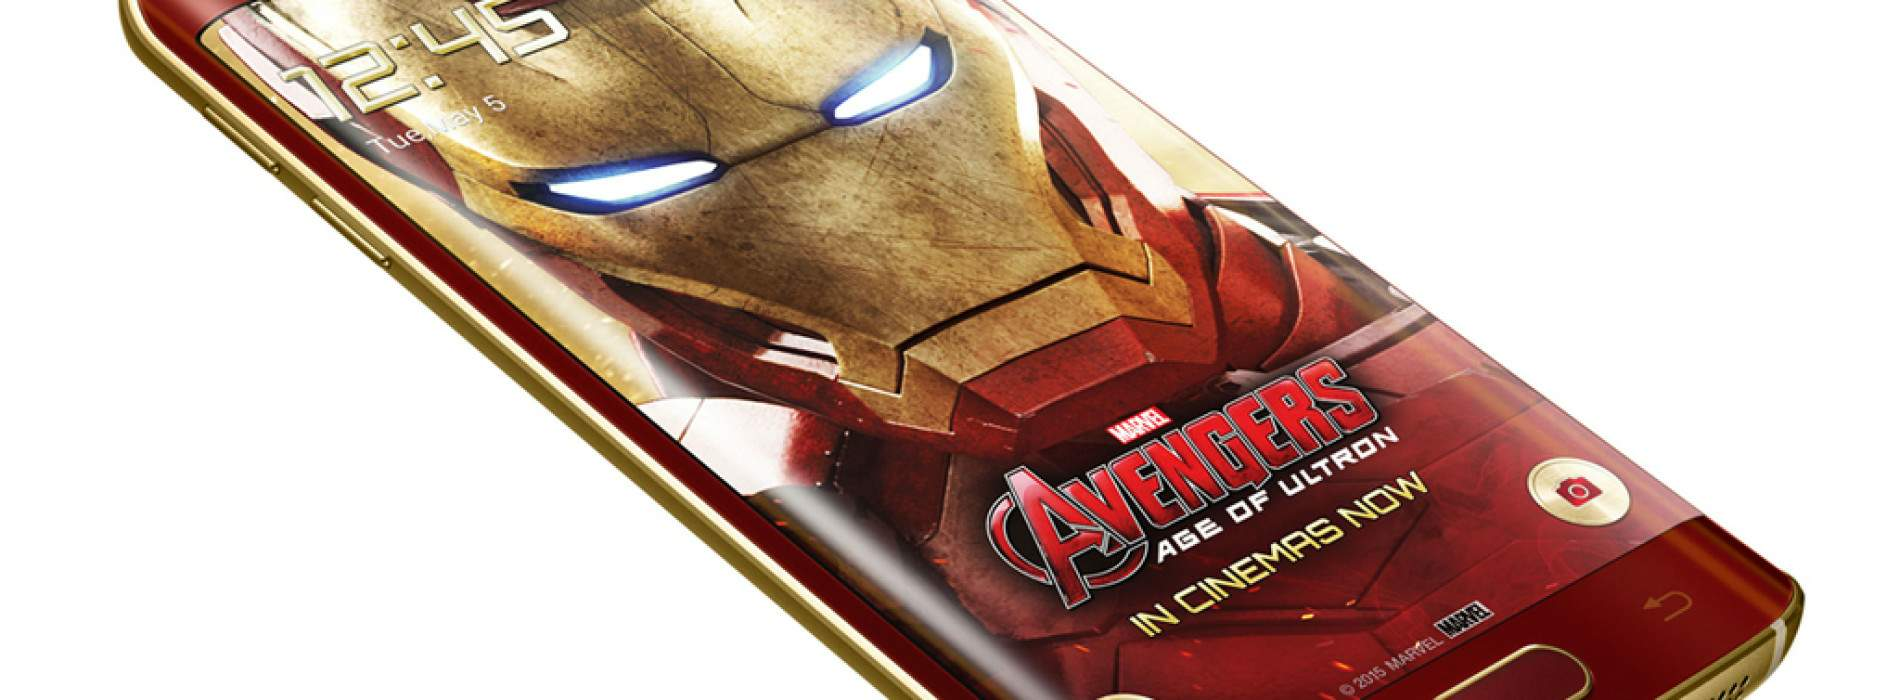 Samsung Galaxy S6 edge: Edición limitada Iron Man